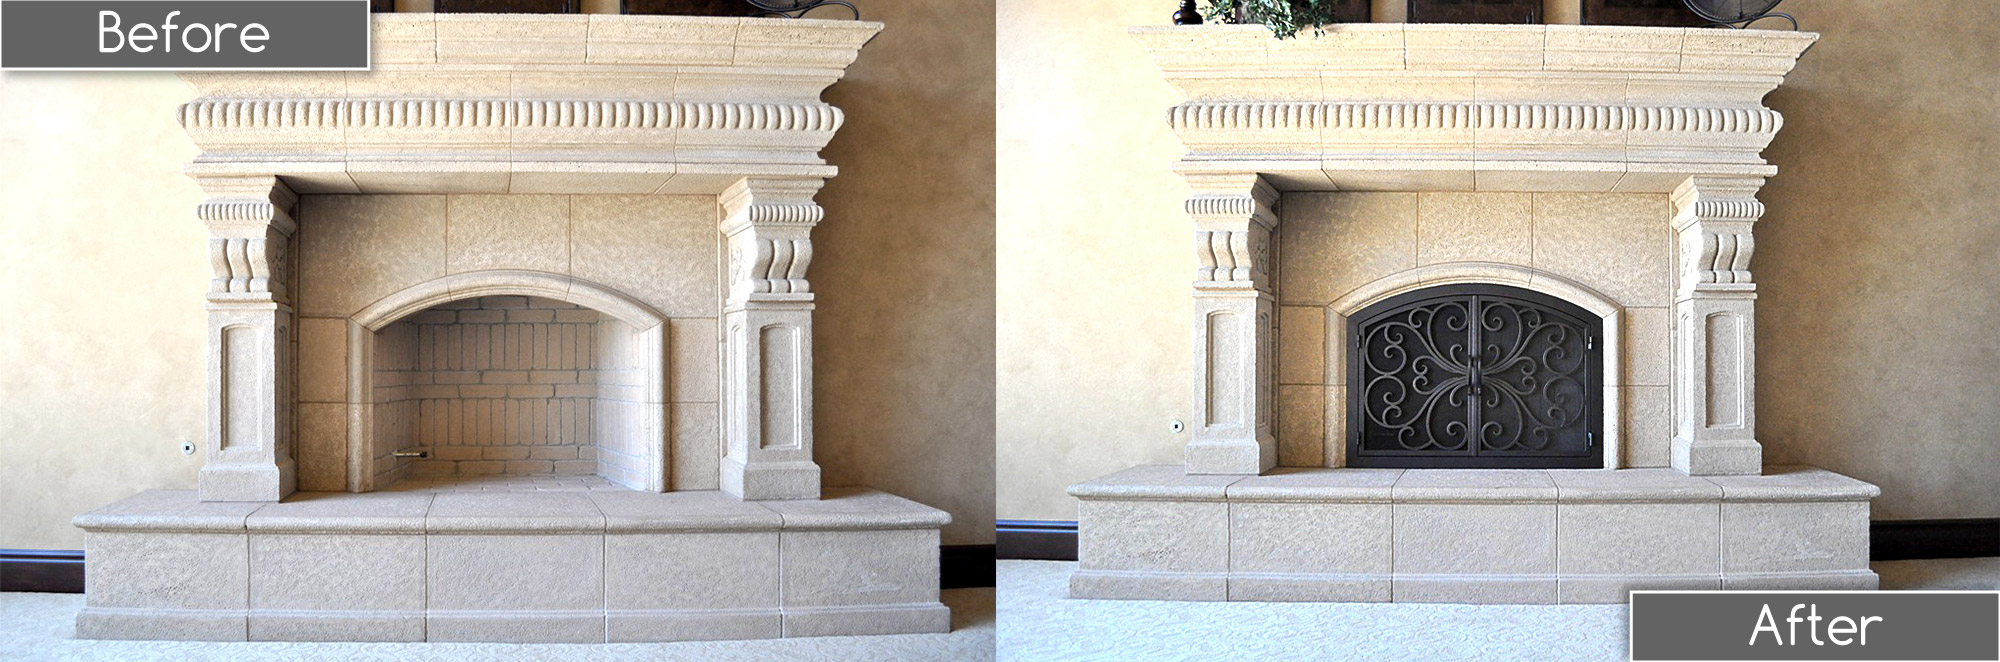 Classic Arch Fireplace Door Before and After